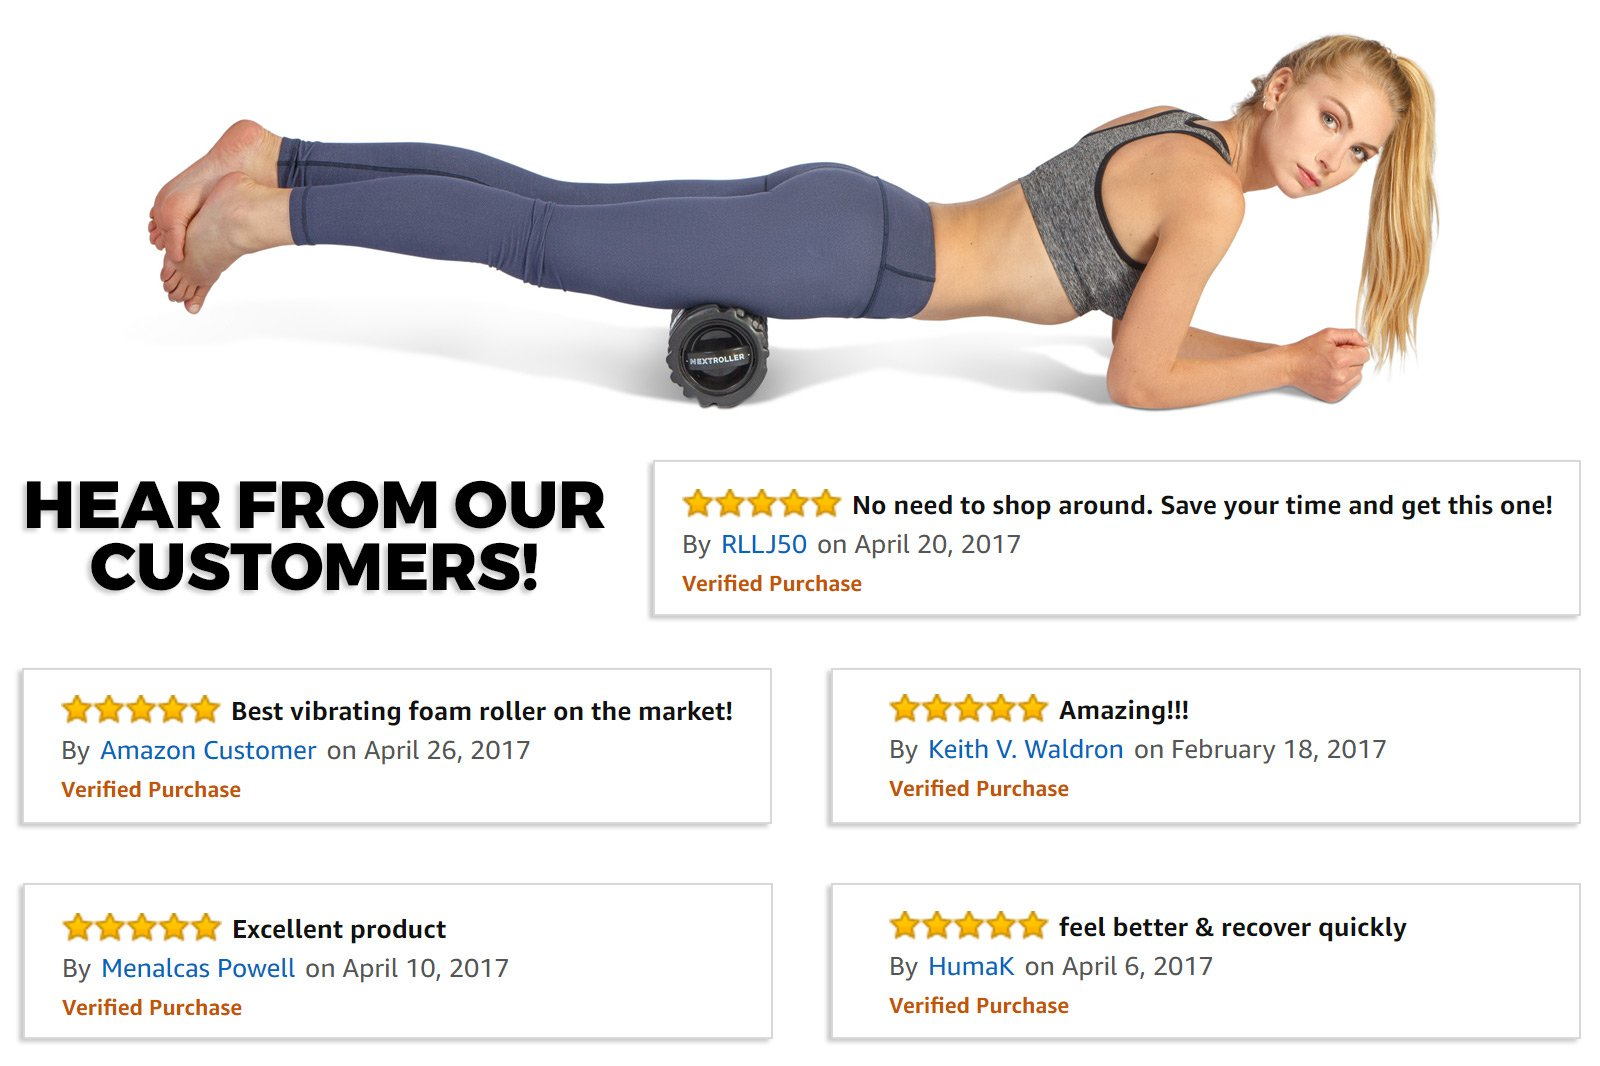 NextRoller 3-Speed Rechargeable Electric Vibrating Foam Roller - The Future of Muscle Recovery, Mobility, and Deep Tissue Trigger Point Sports Massage Therapy - Firm High Density, 1 Year Warranty by NextRoller (Image #2)